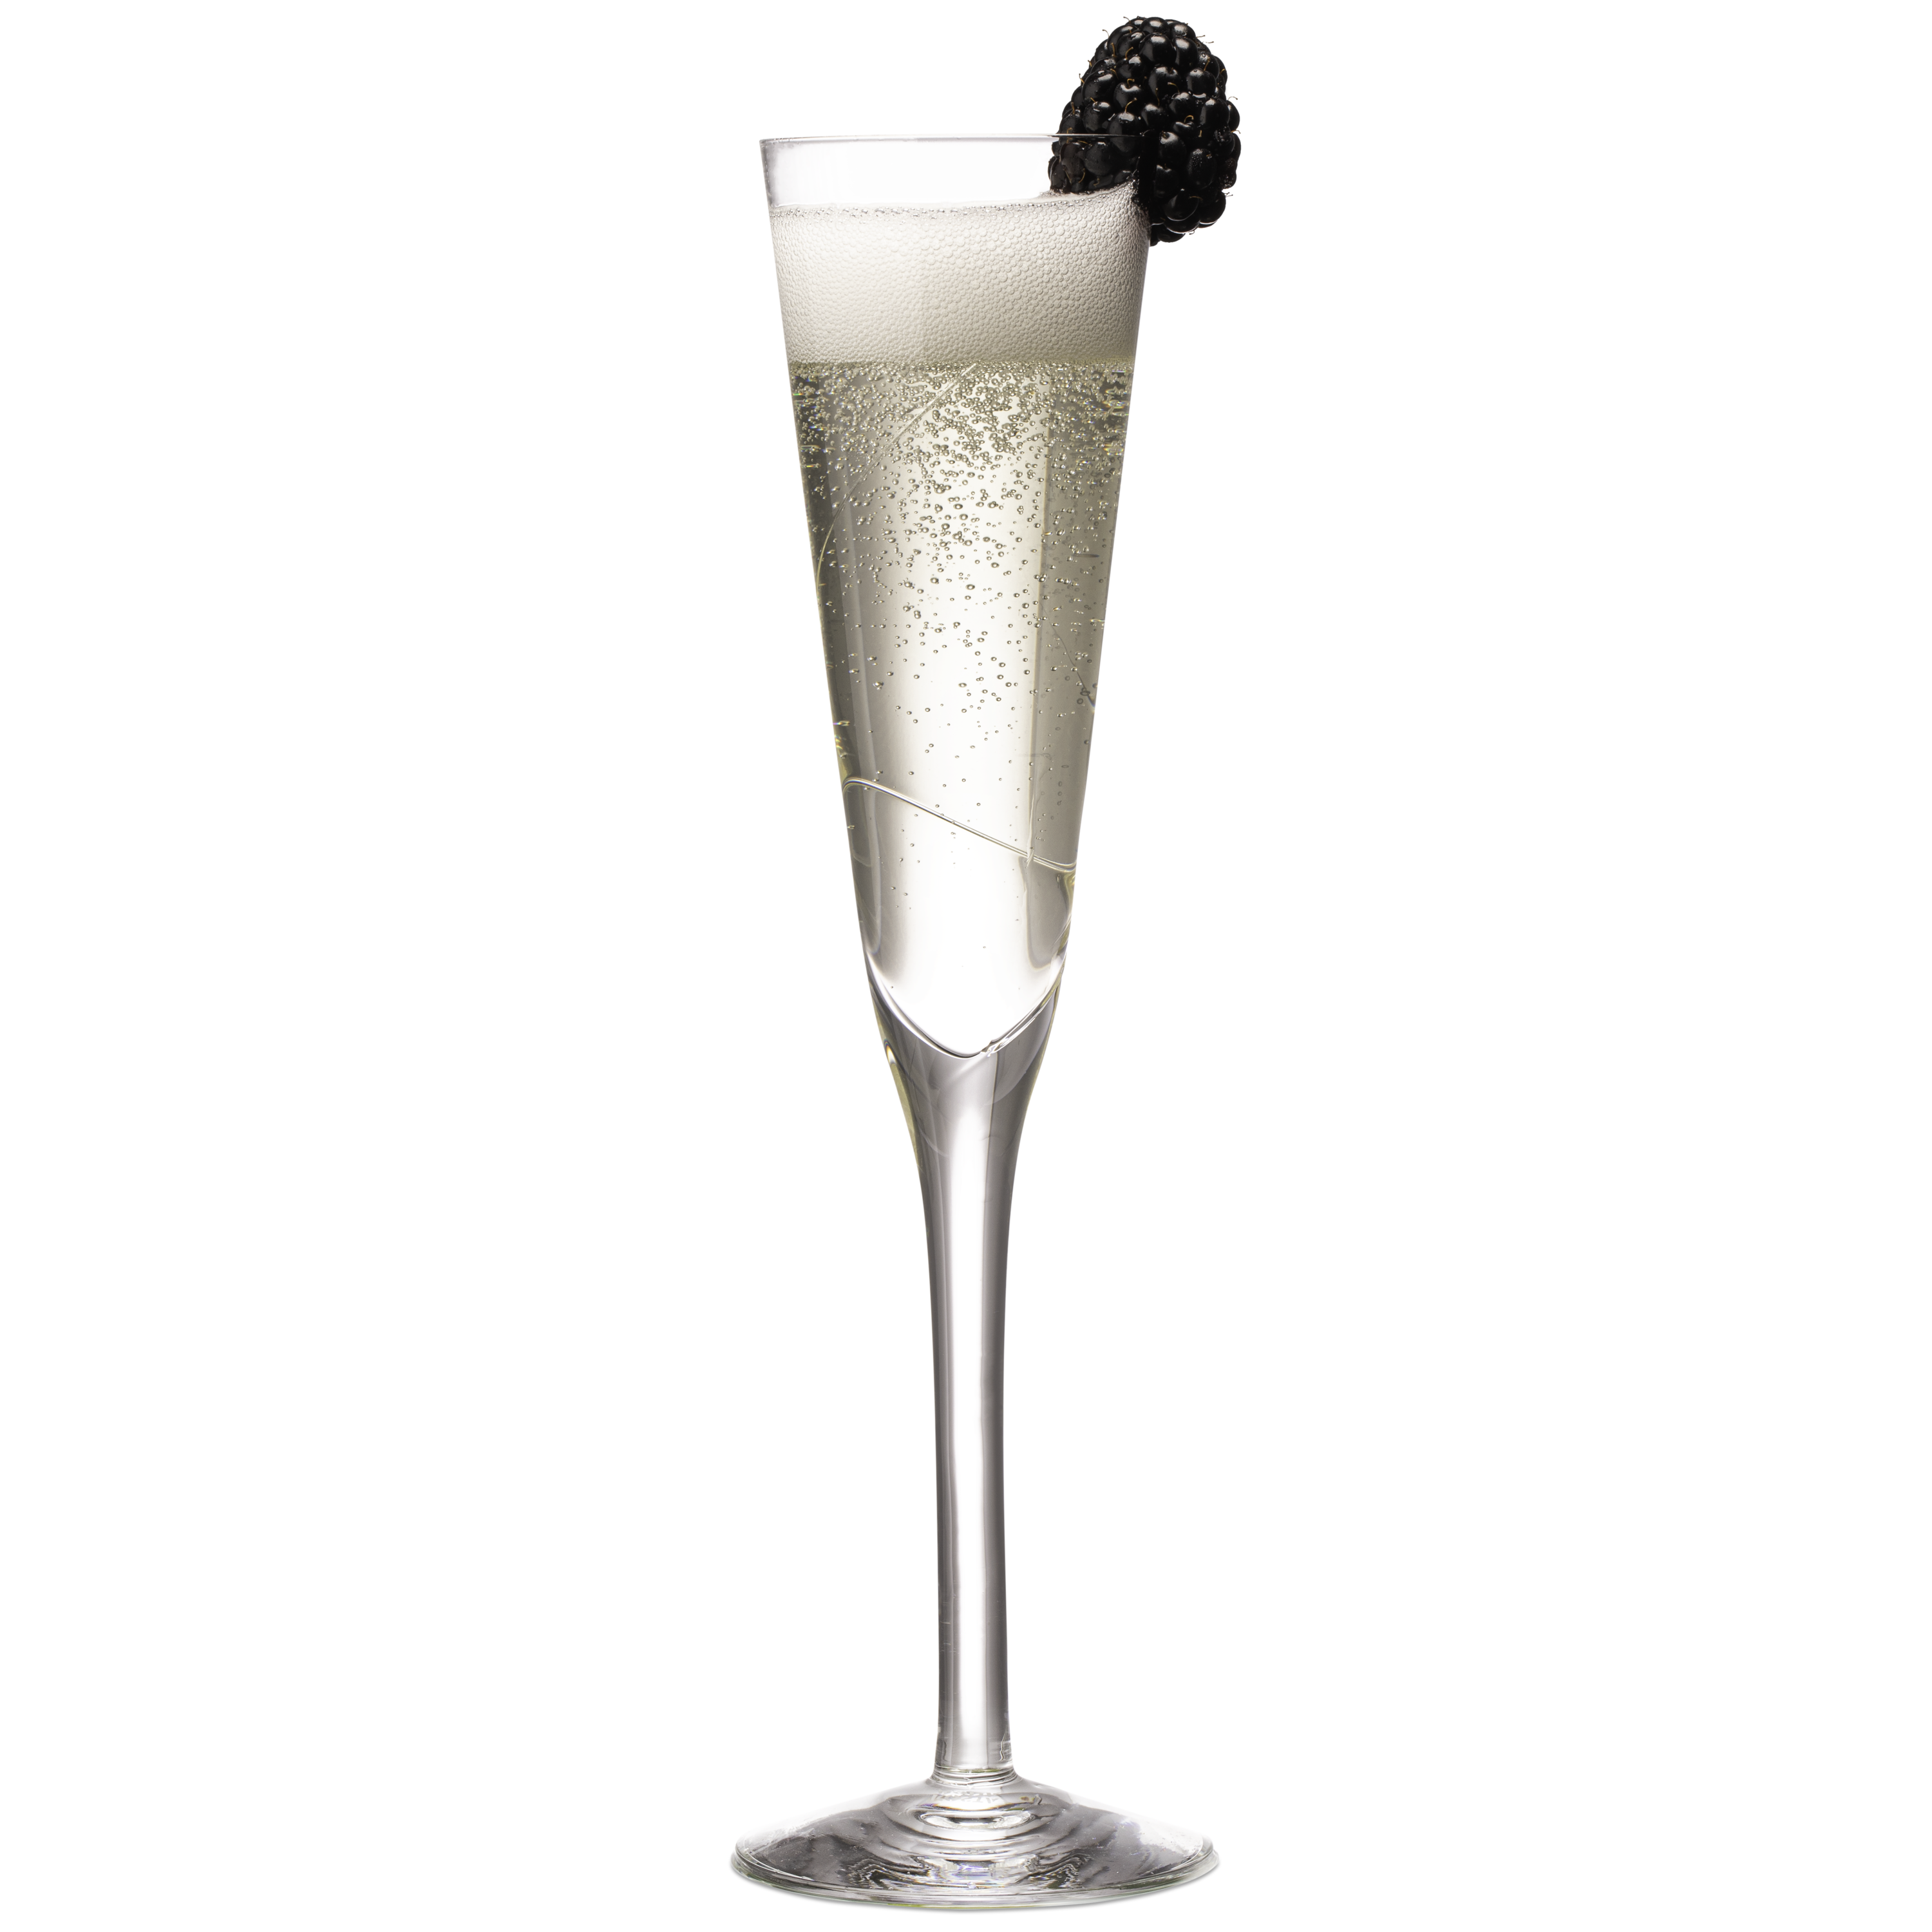 The ST~GERMAIN Royale